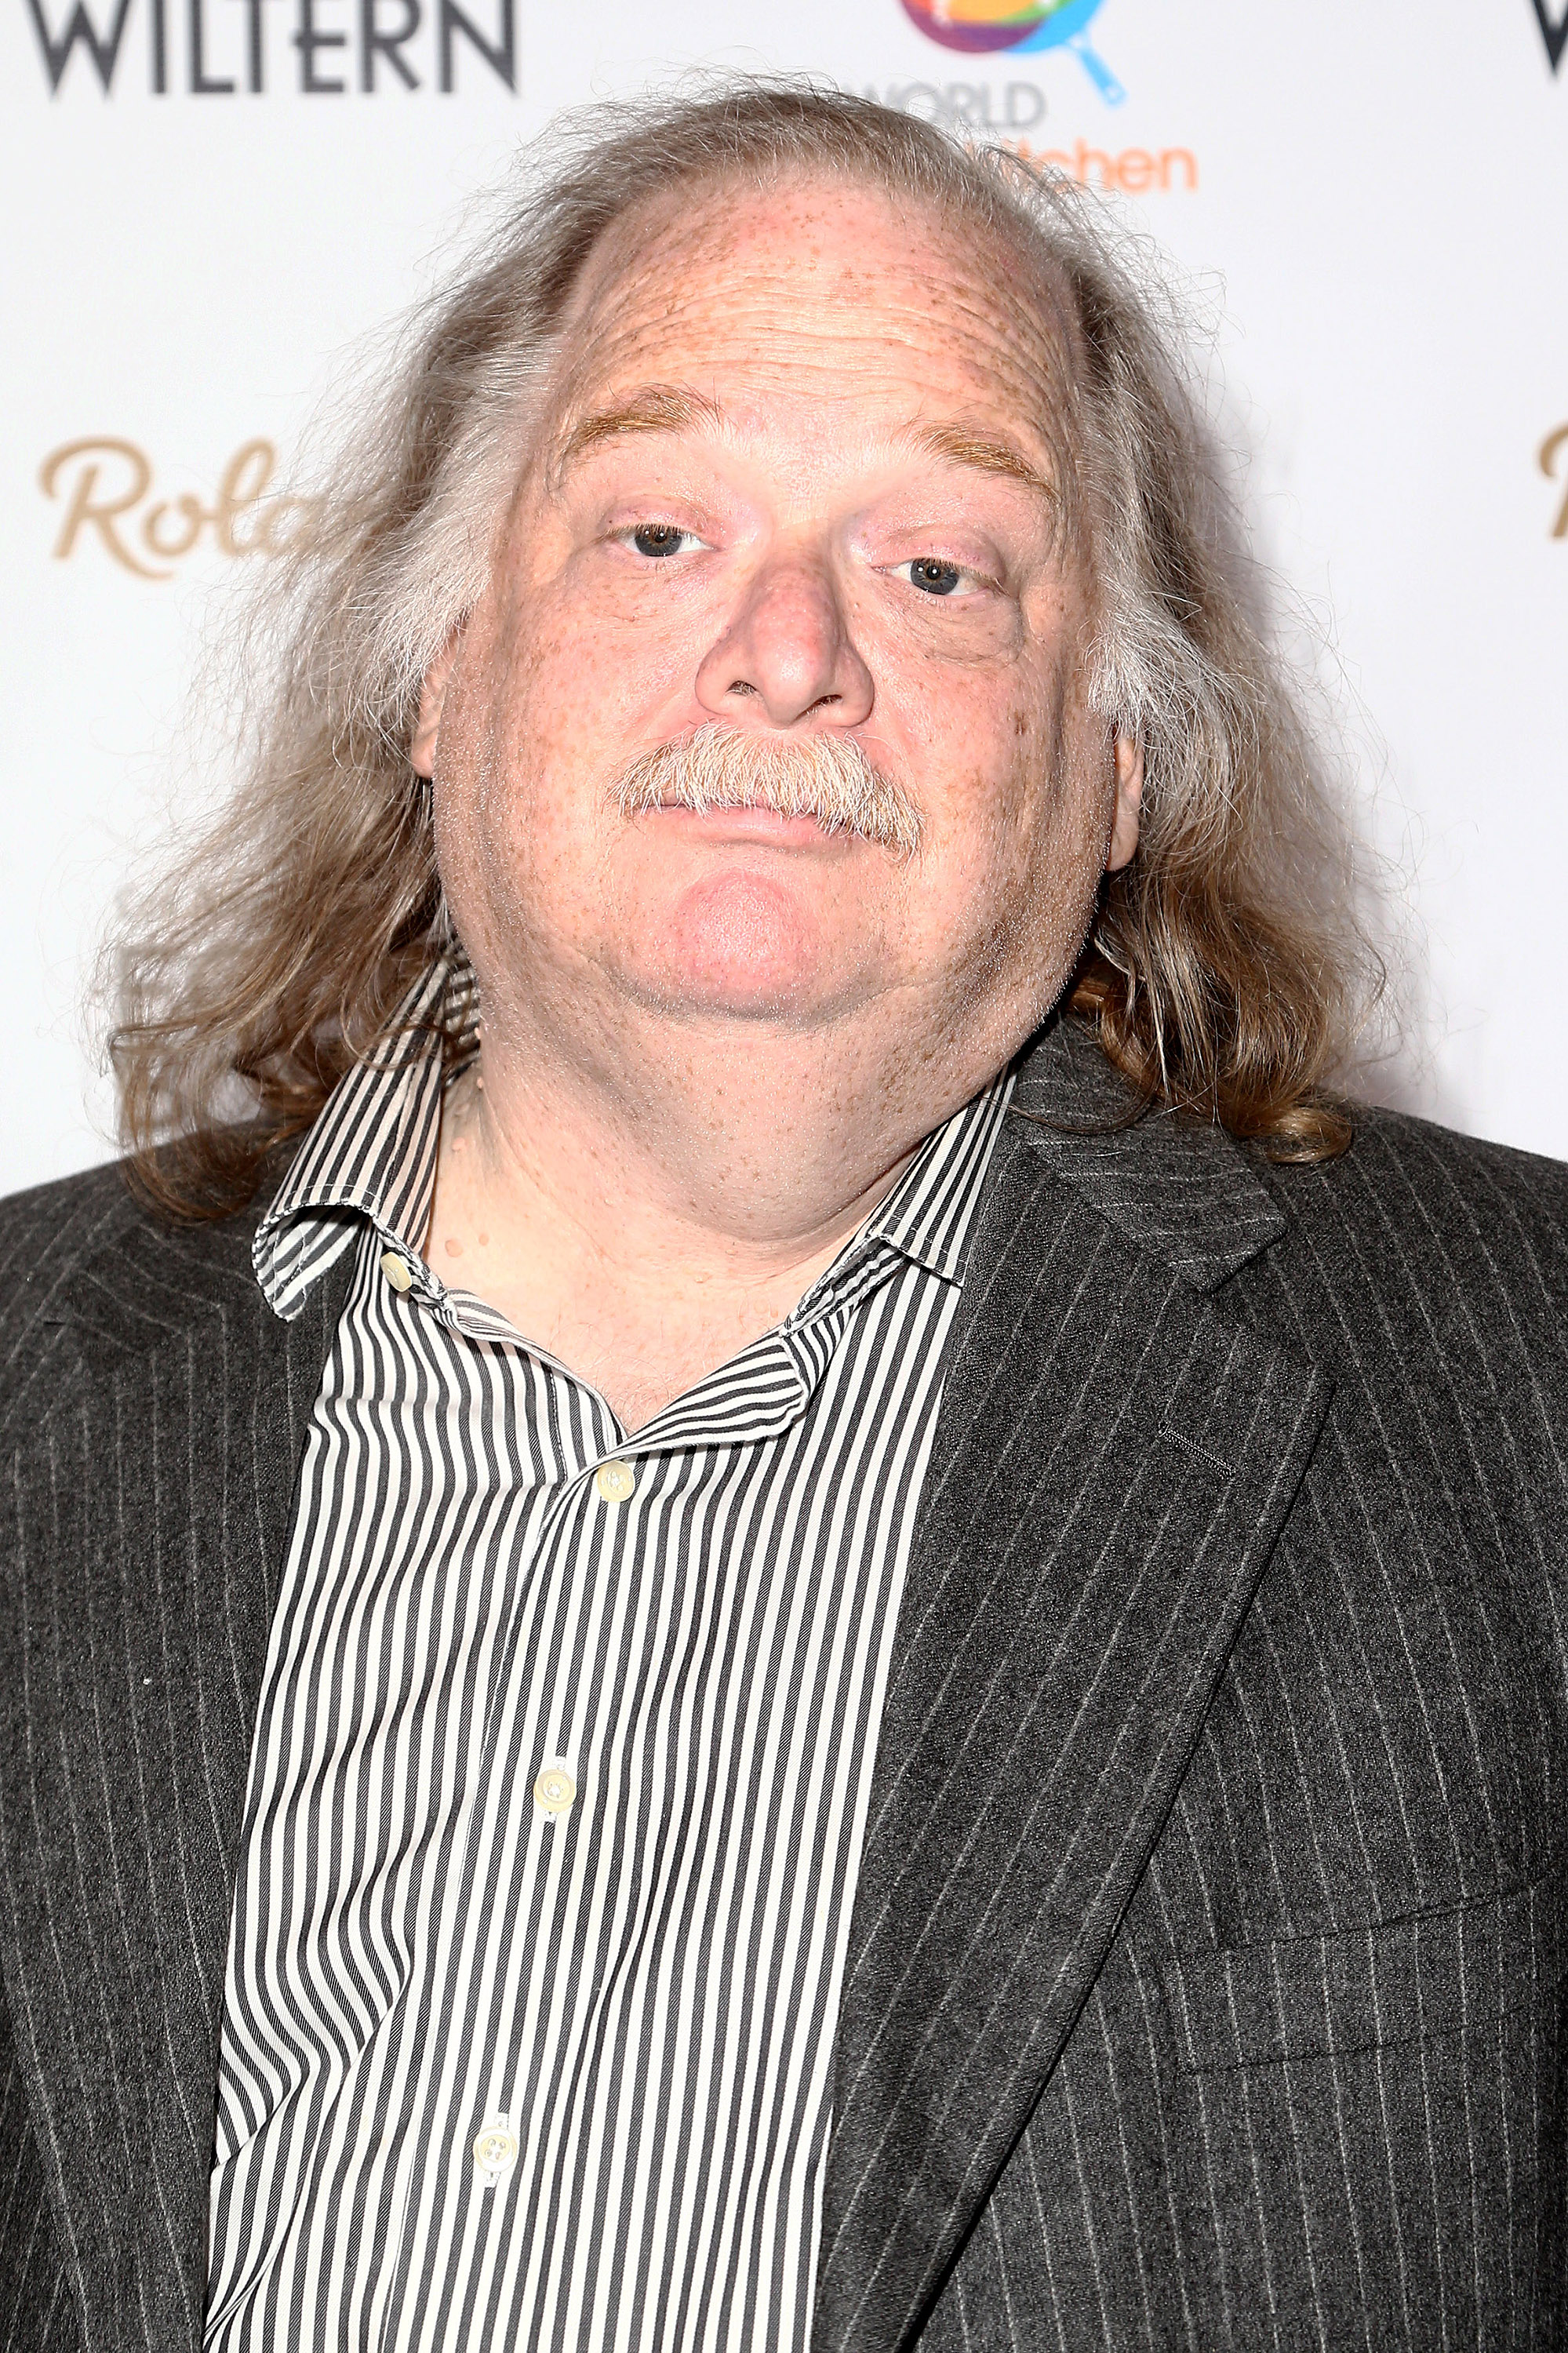 Jonathan-Gold-First-Pulitzer-Prize-Winning-Food-Critic-Dies-At-57